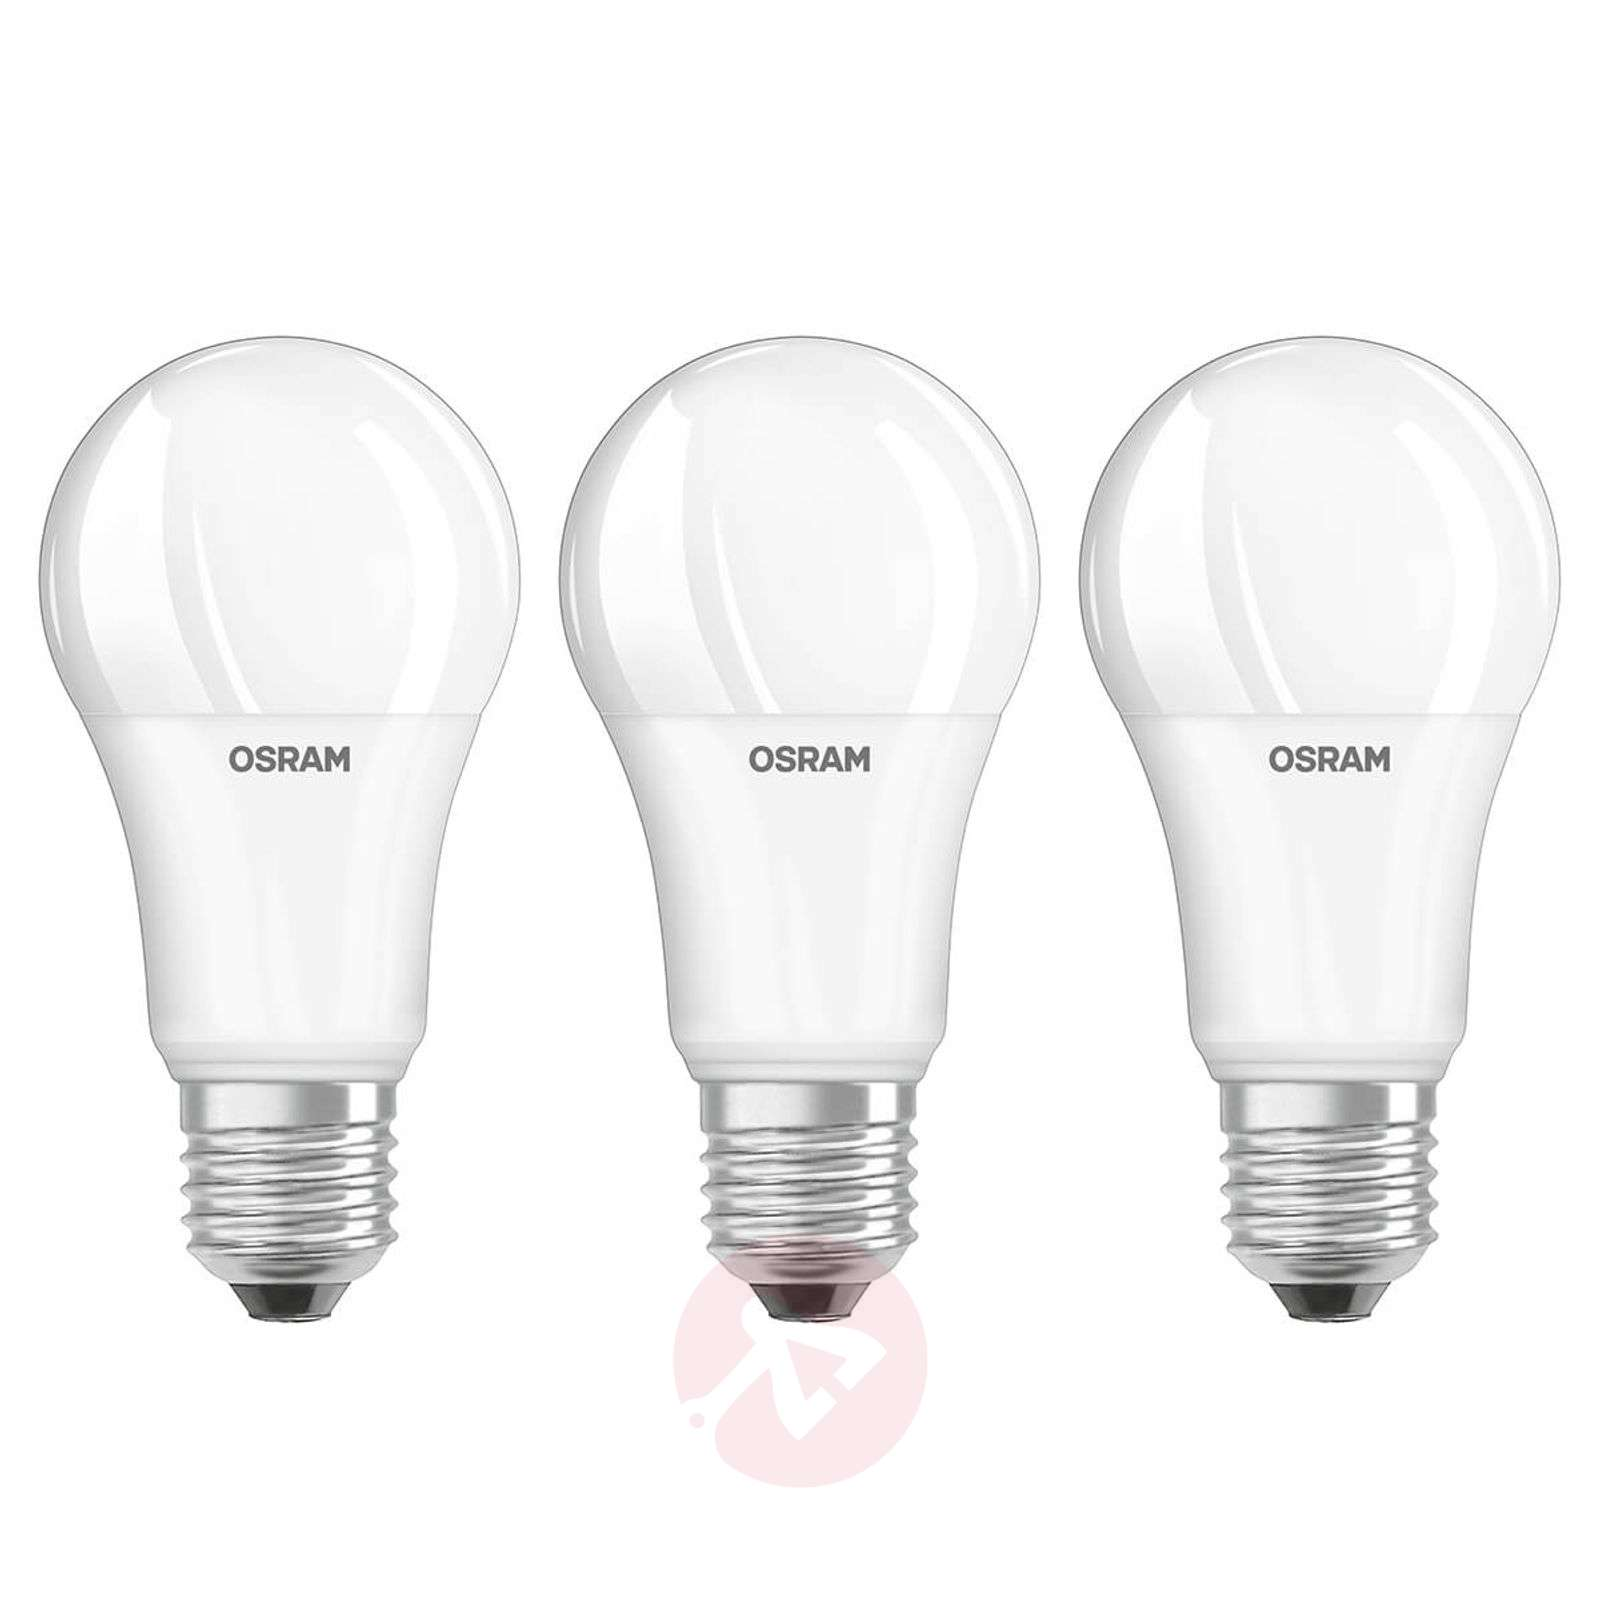 Lampadina LED E27 14W, bianco caldo, set da 3-7262103-01